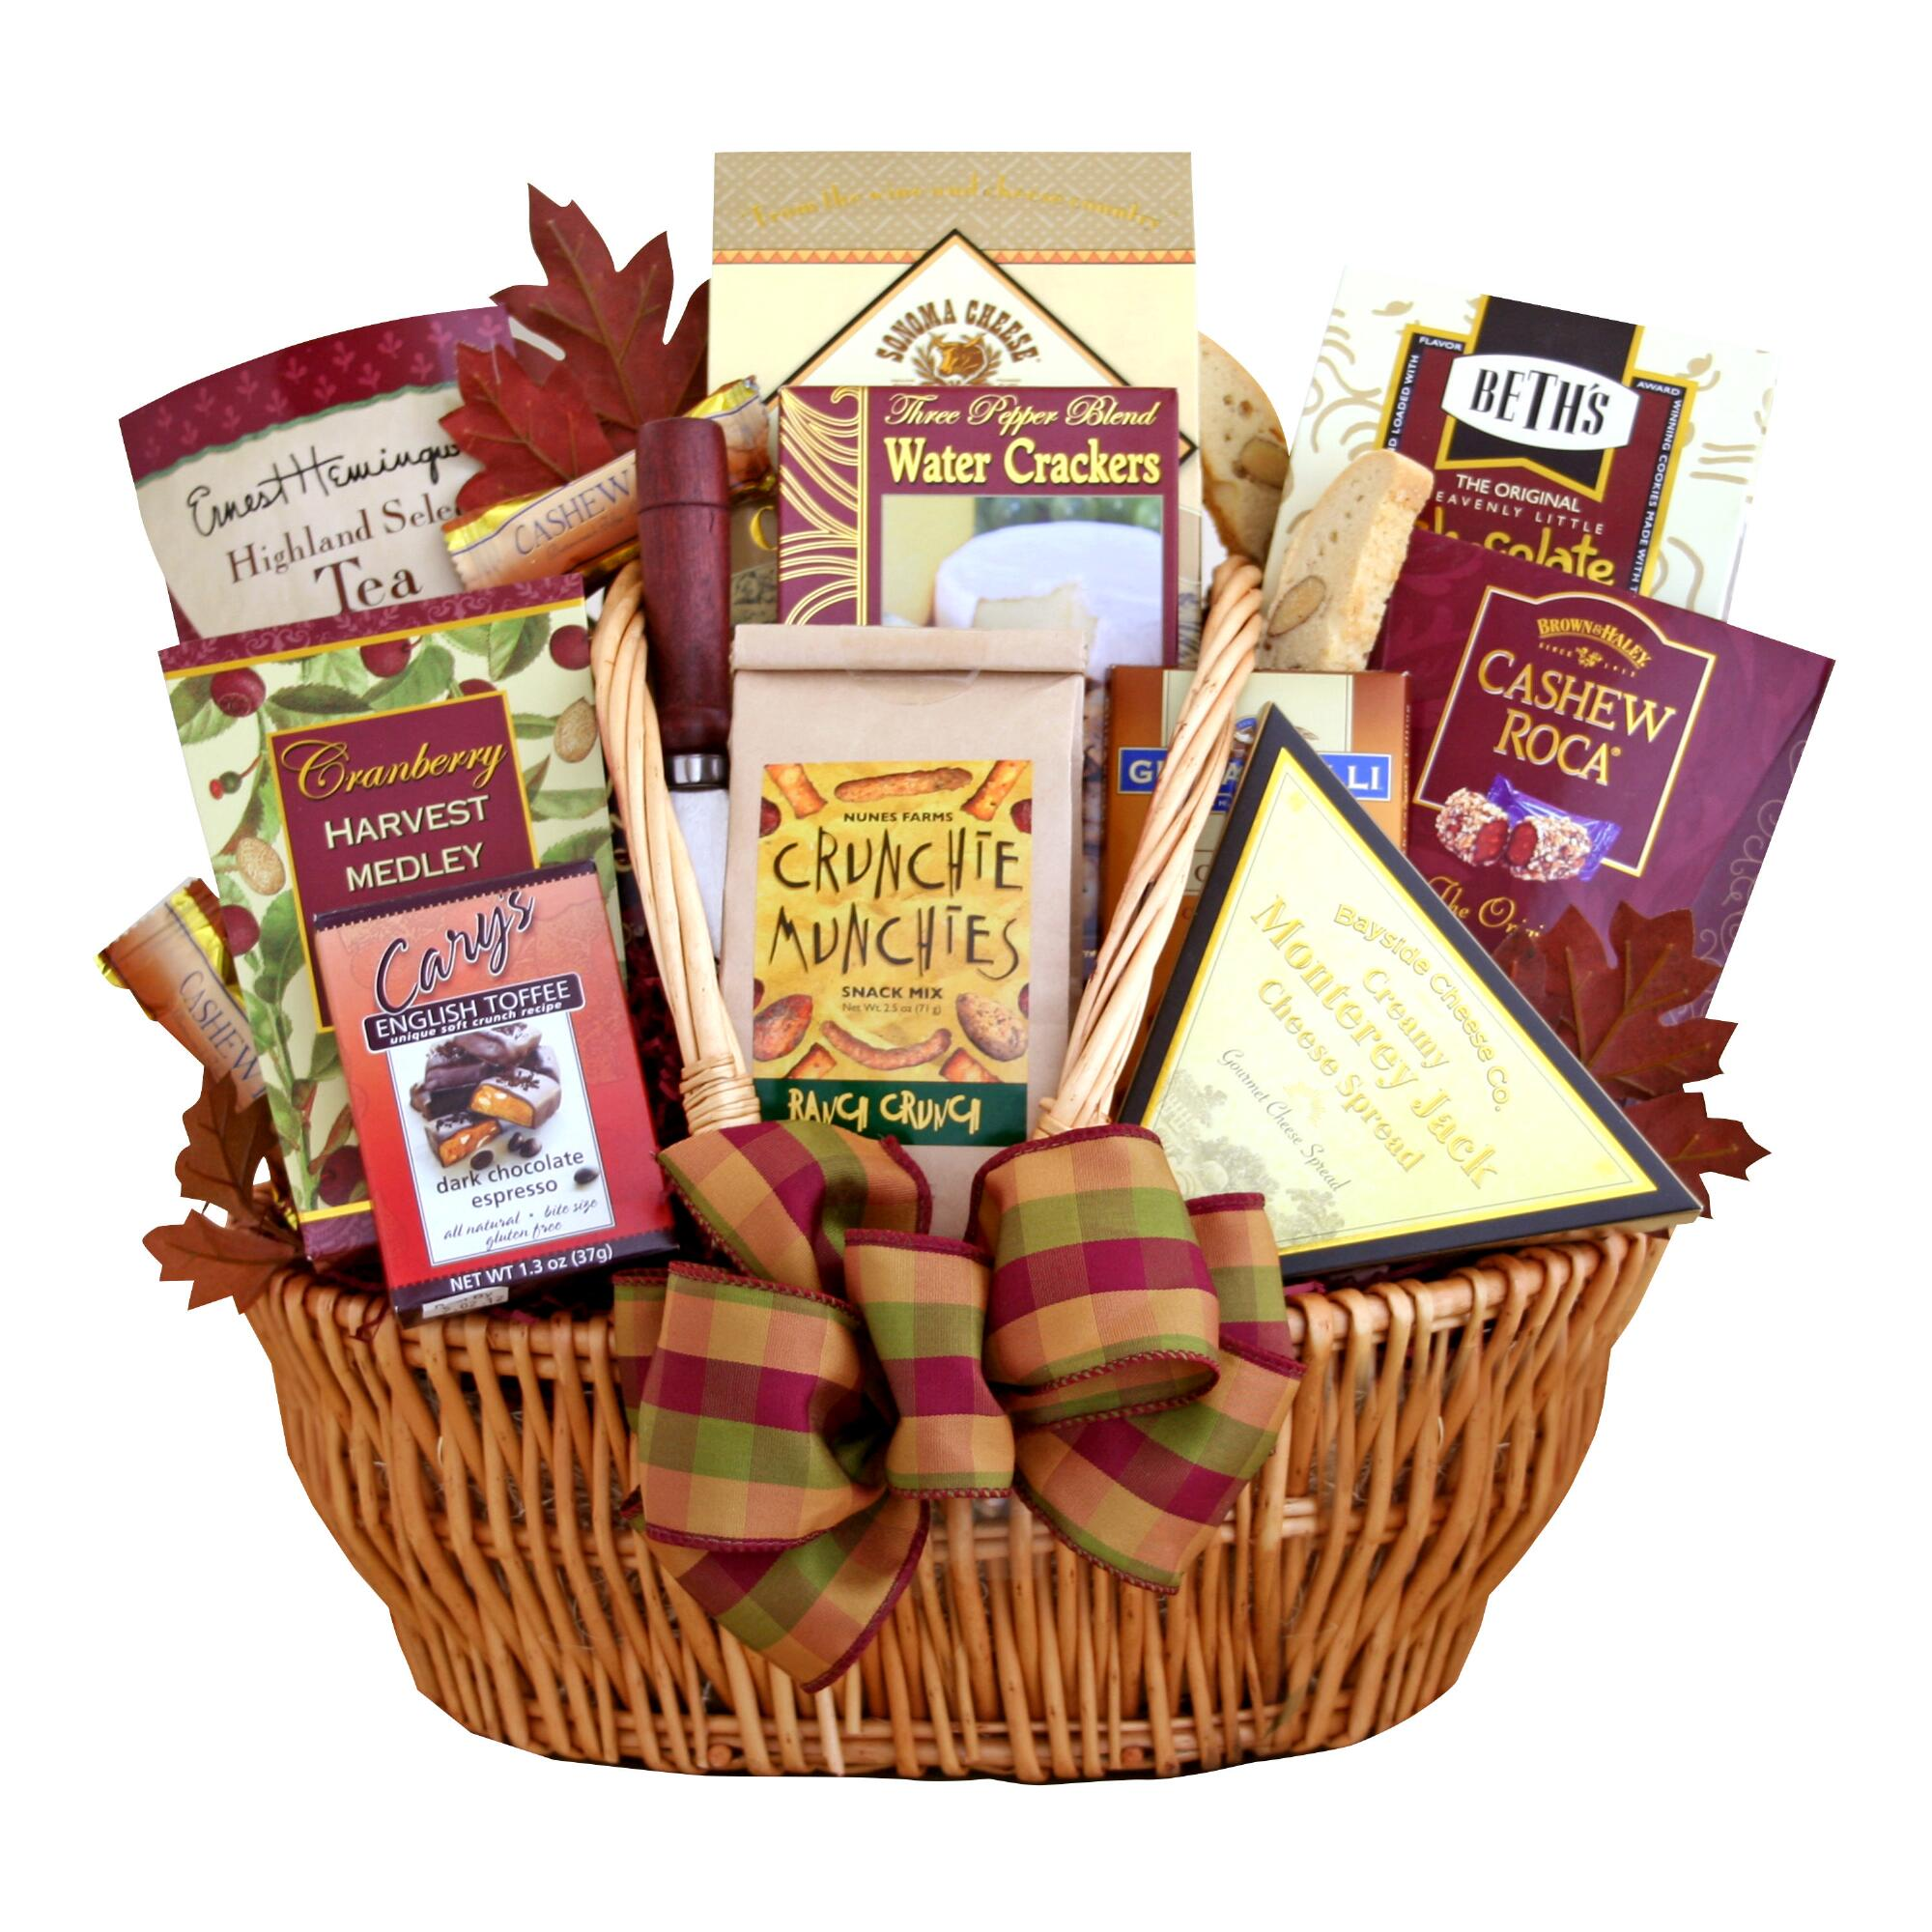 Indian Wedding Gift Basket Ideas : Ideas Indian Wedding Gift Baskets munchies galore gift basket world ...